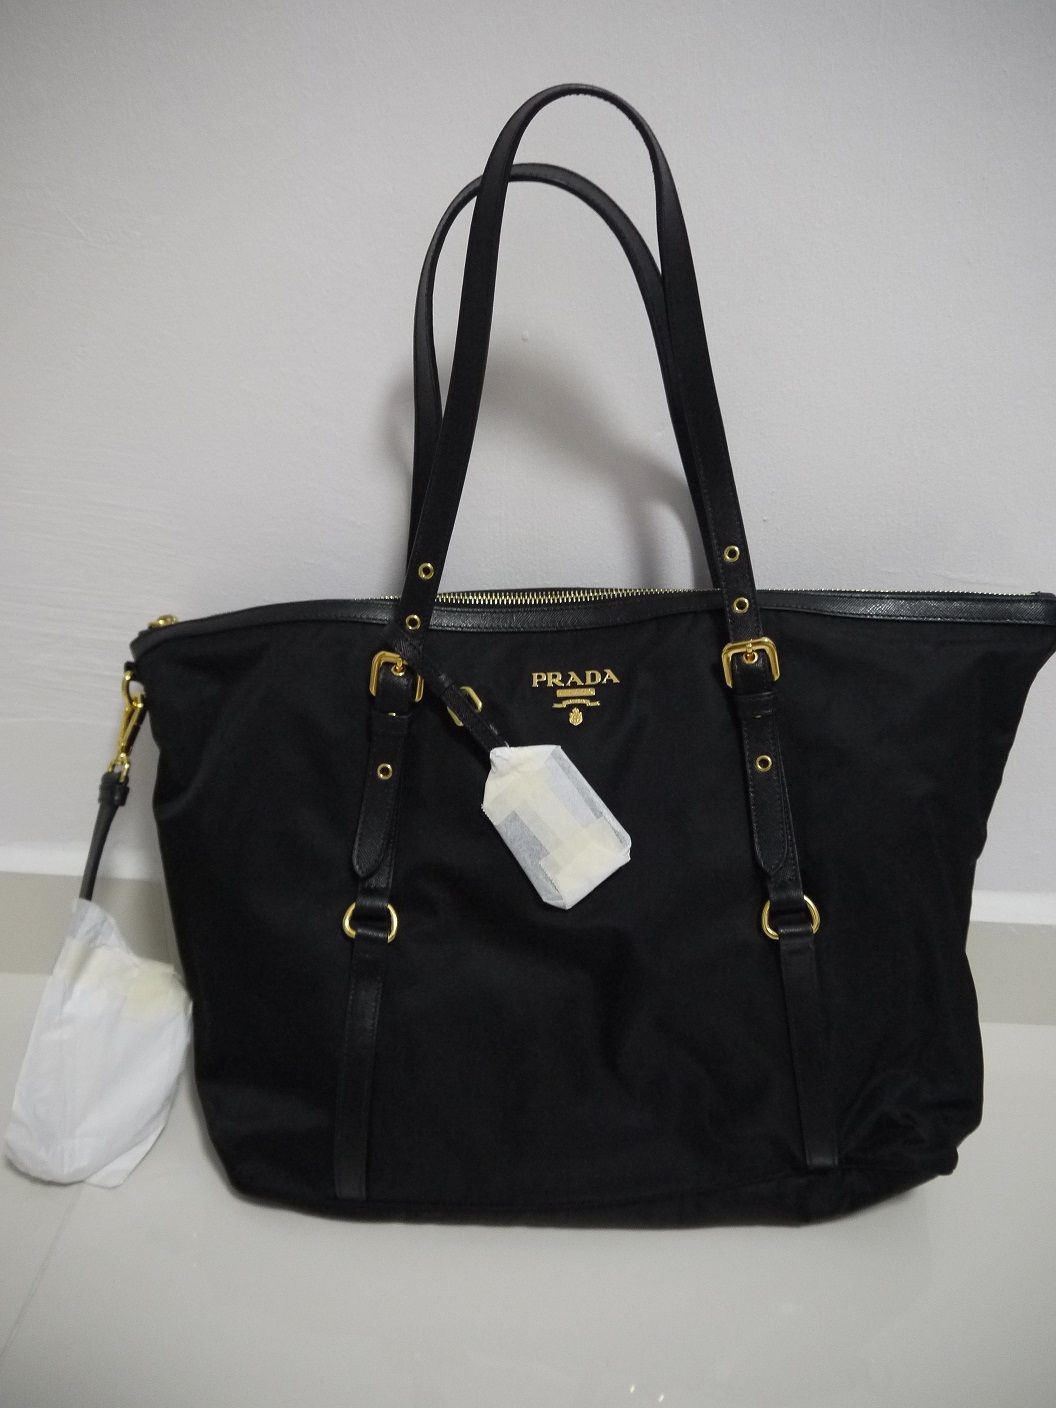 6966b5847f66 Prada Tessuto Saffiano Nylon Tote-Black | Bagging for attention ...